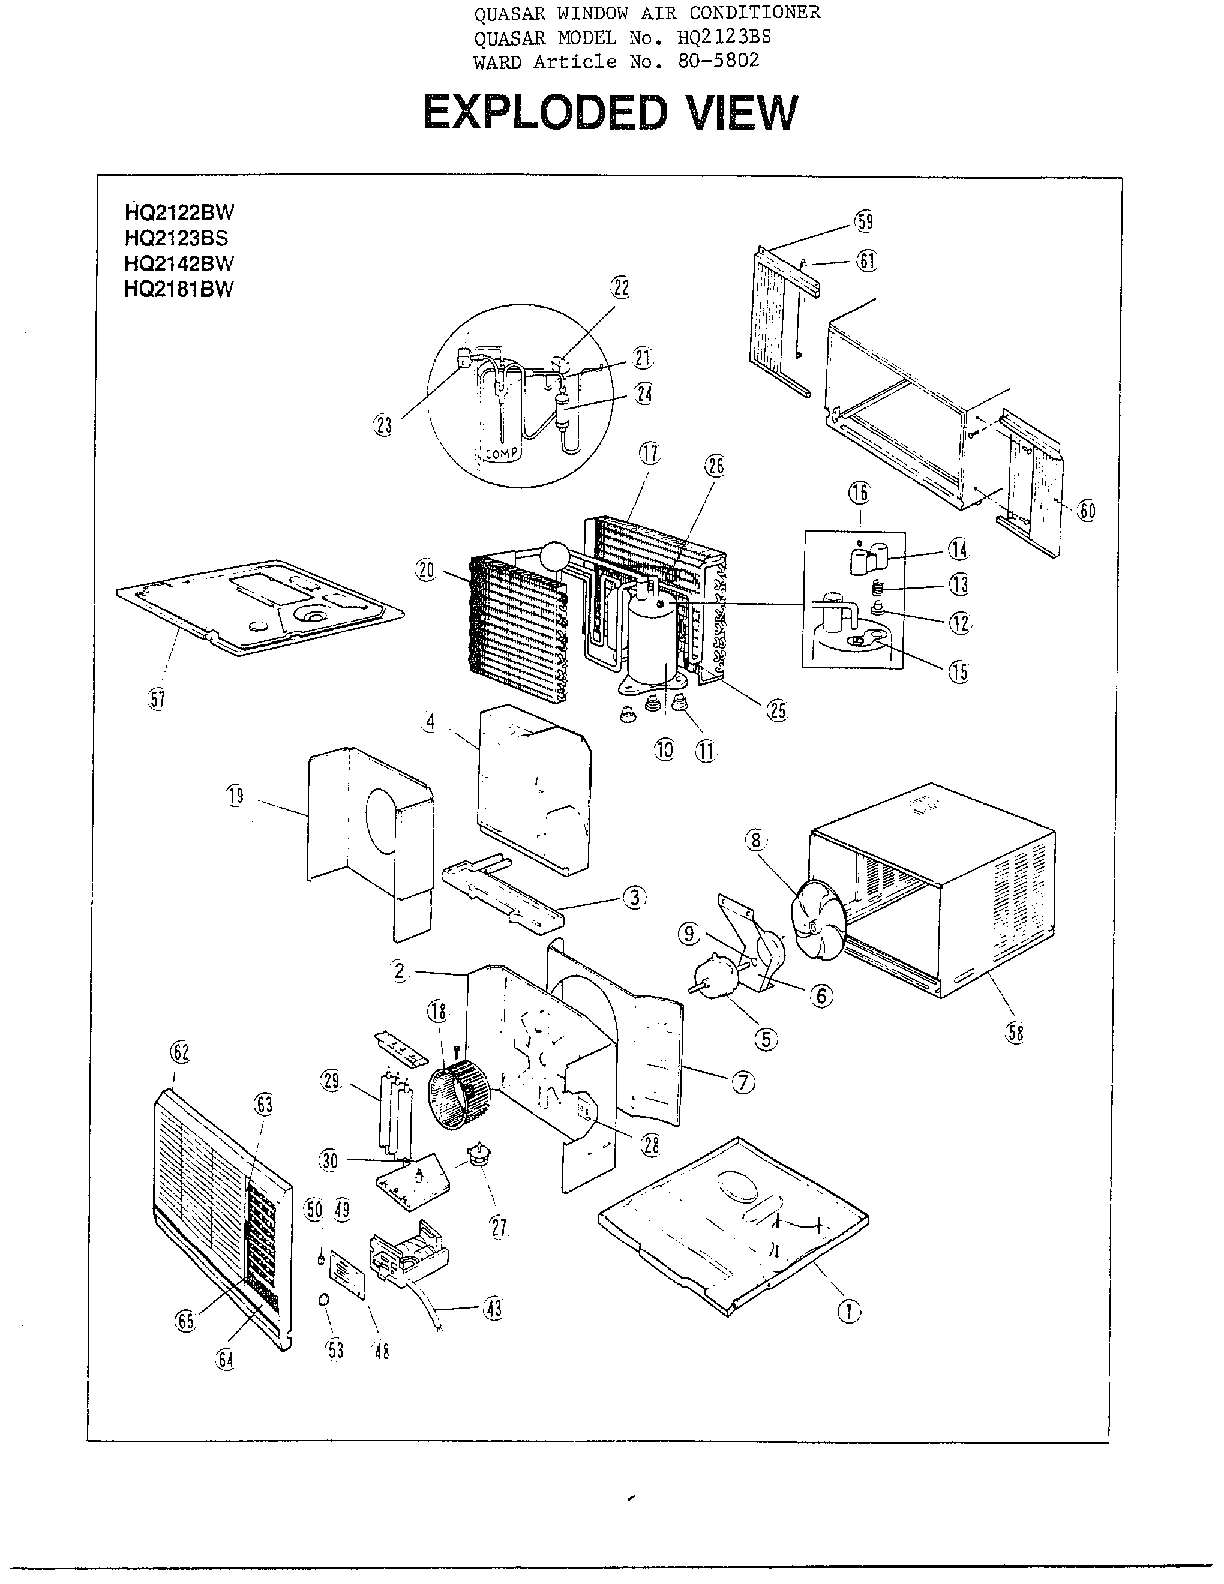 Parts of a Window http://parts.sears.com/partsdirect/part-model/Quasar-Parts/Room-air-conditioner-Parts/Model-HQ2122BW/1385/0904032/WA001136/00003